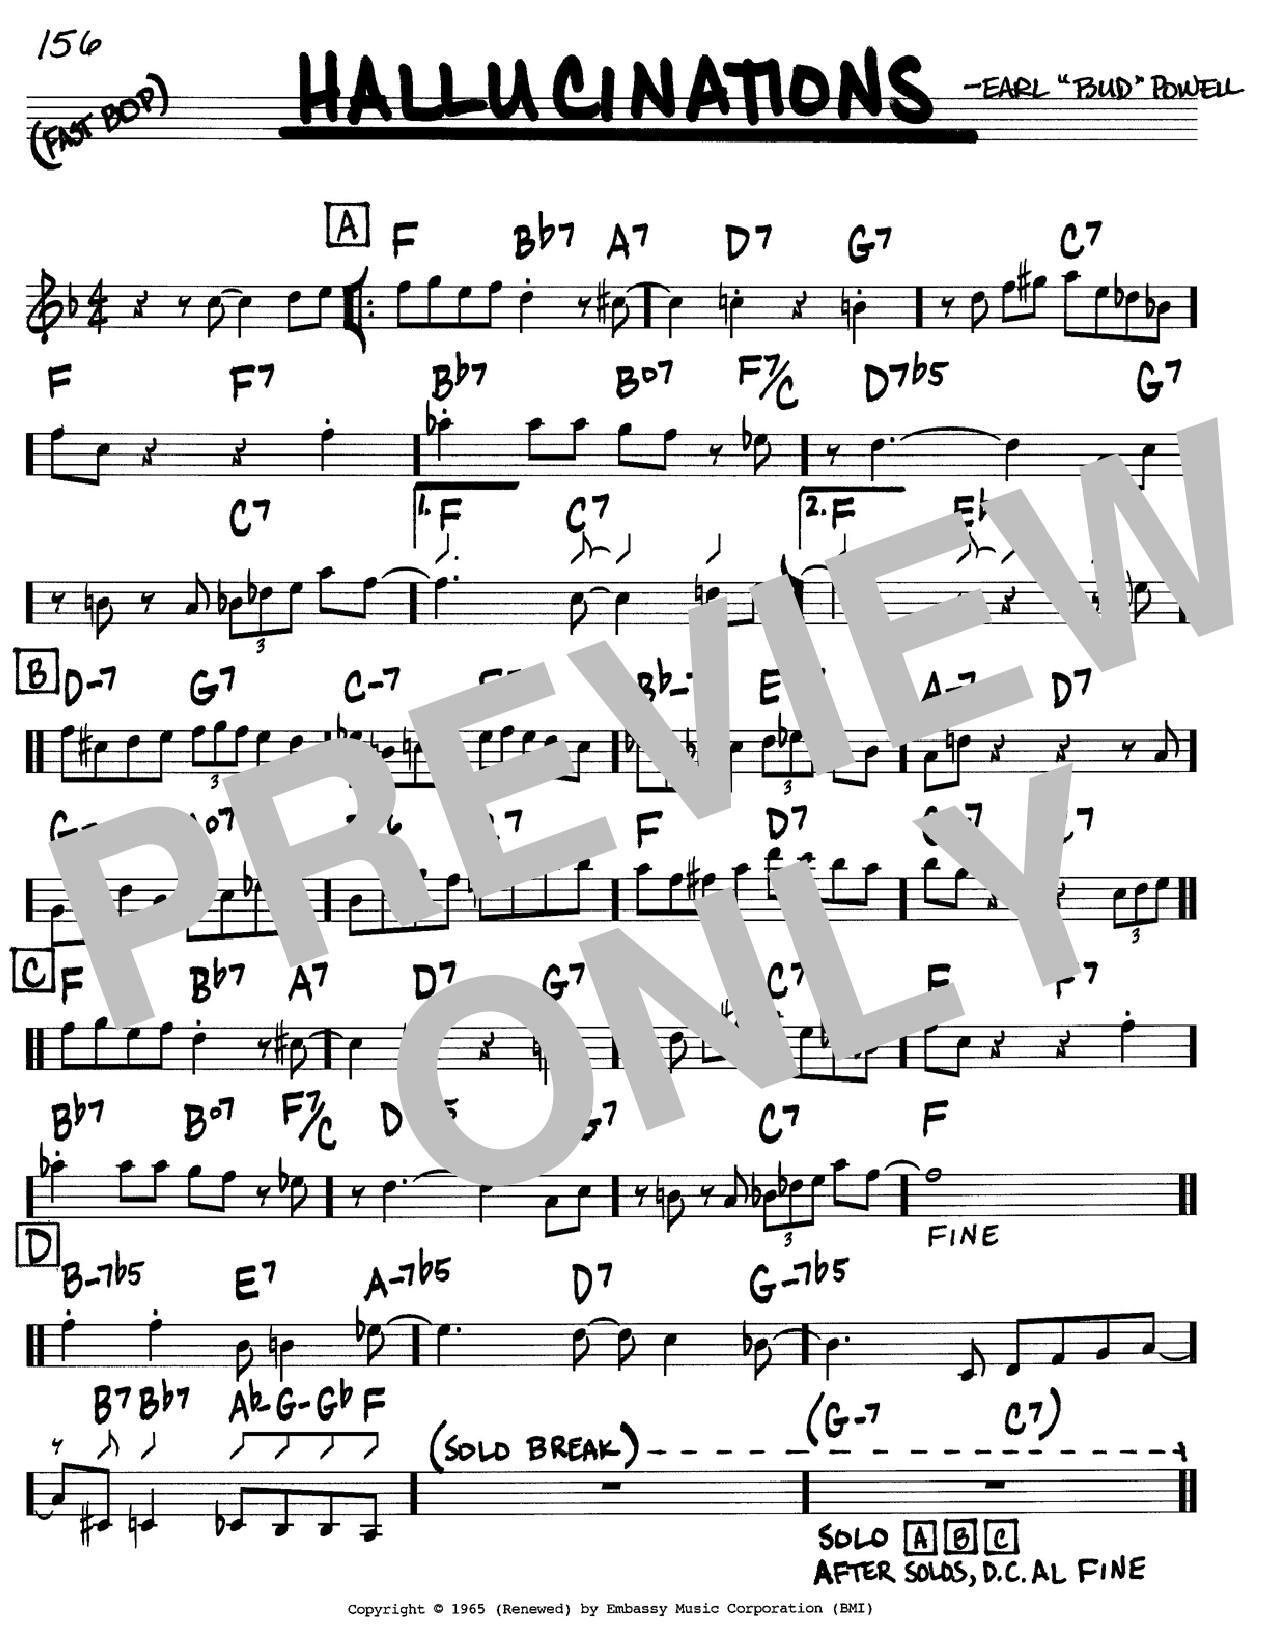 Bud Powell Hallucinations sheet music notes and chords